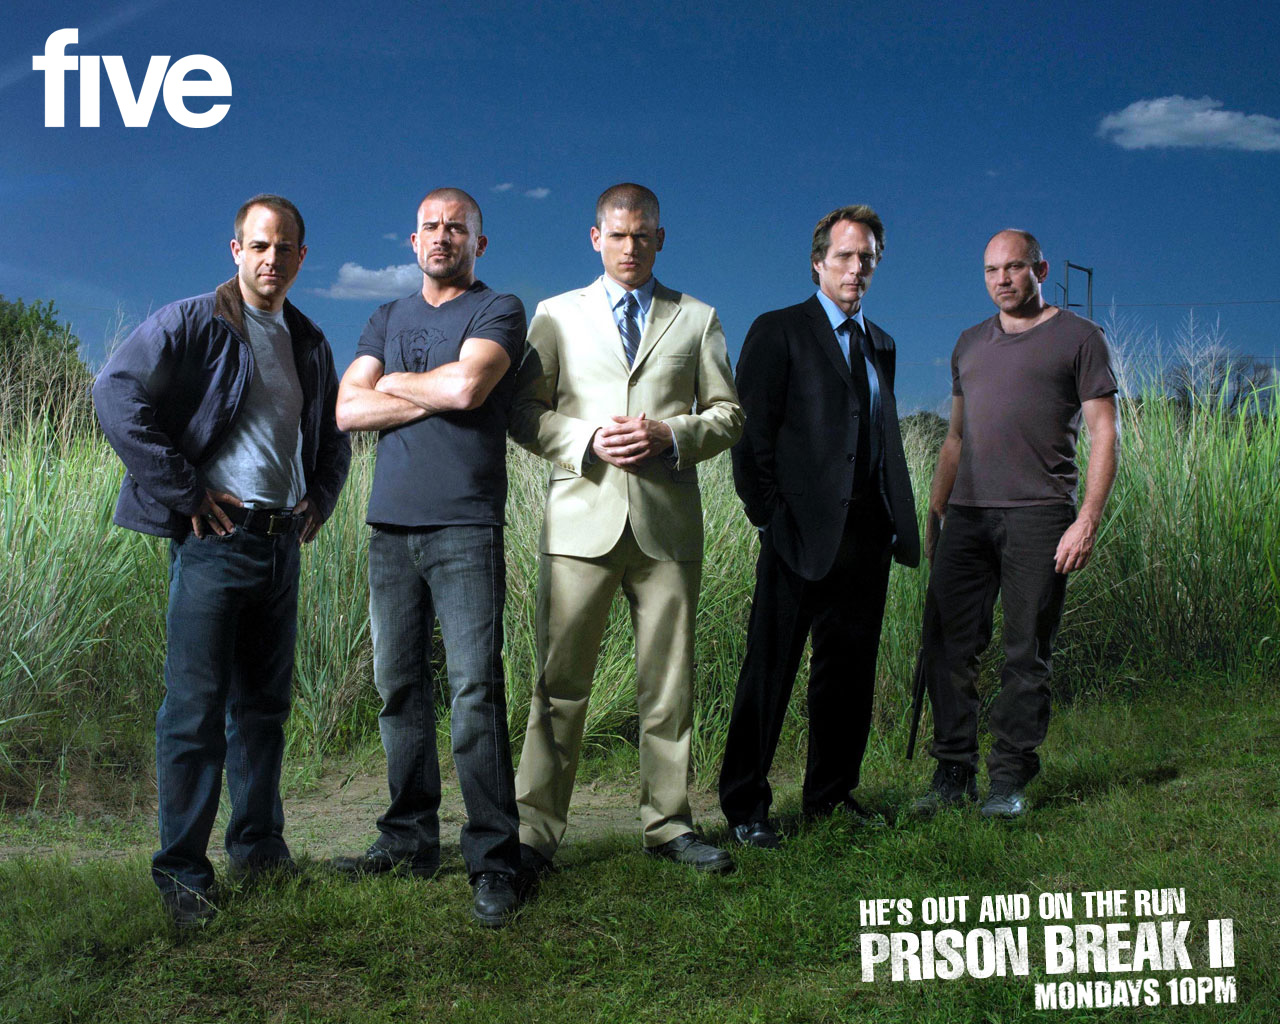 season 2 - Prison Break Wallpaper (357145) - Fanpop